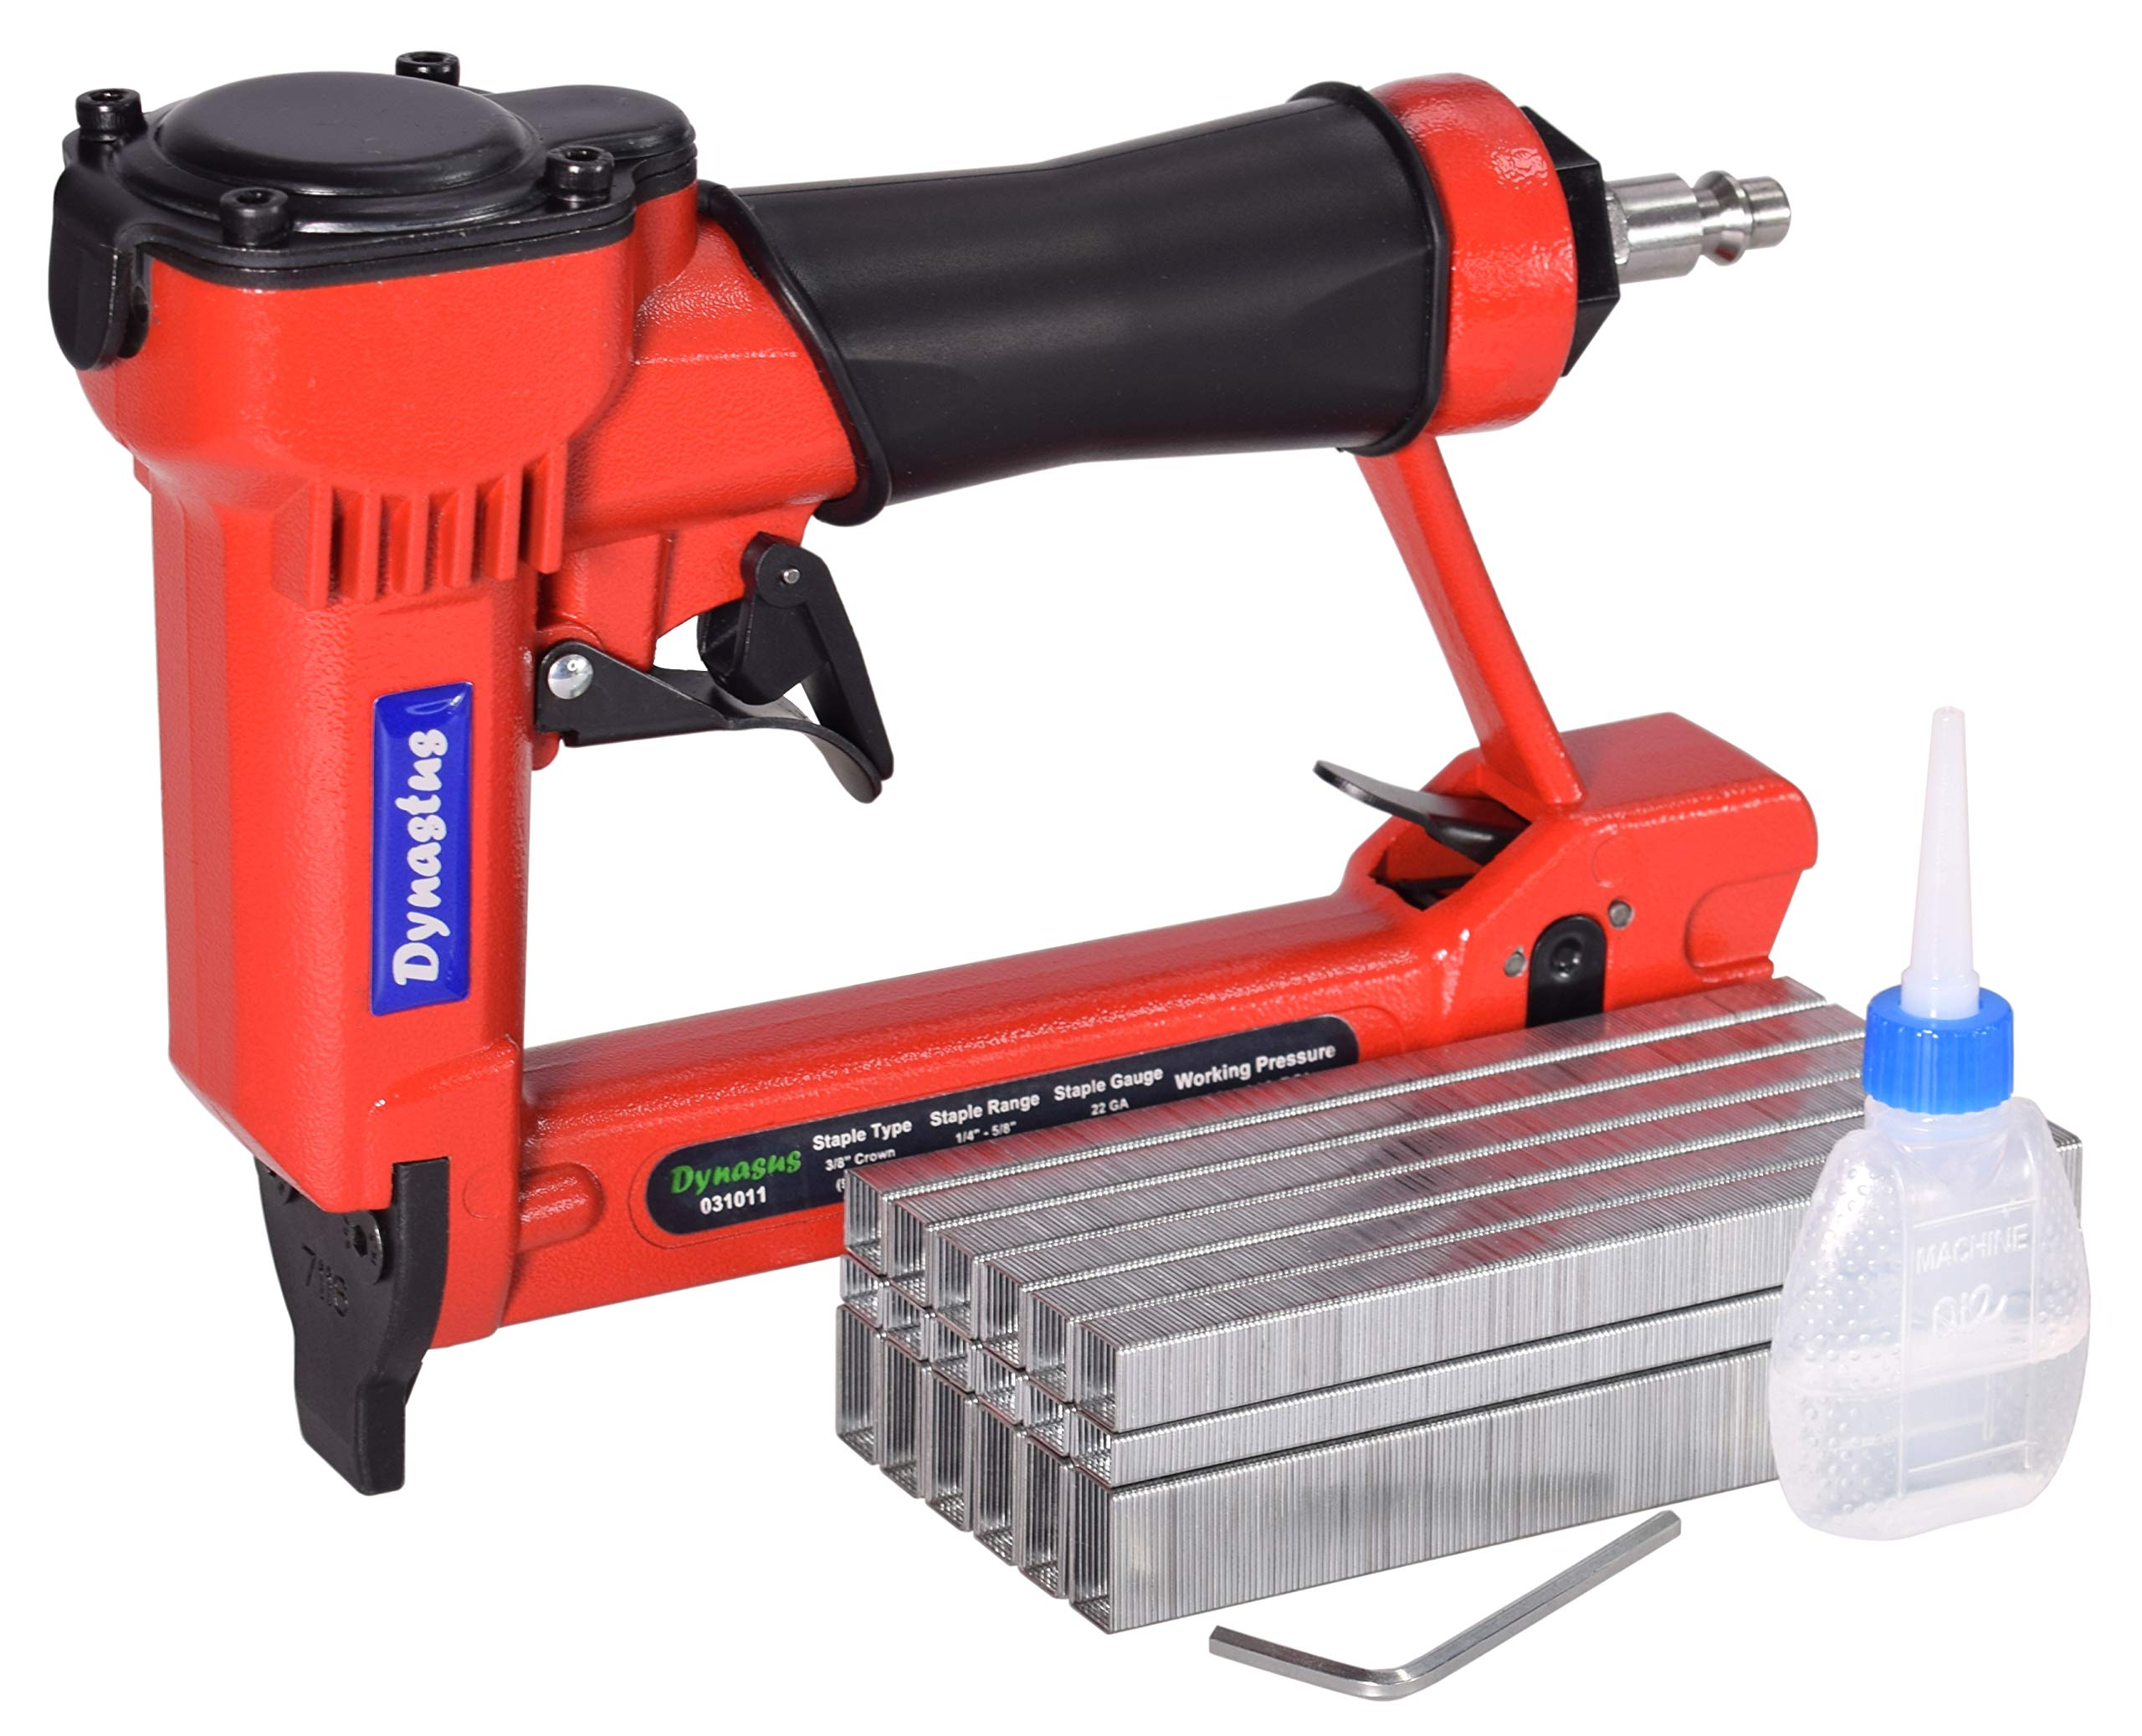 Pneumatic Upholstery Staple Gun, 22 Gauge 3/8'' Wide Crown Air Stapler Kit, by 1/4-Inch to 5/8-Inch, with 6000 staples by Dynastus